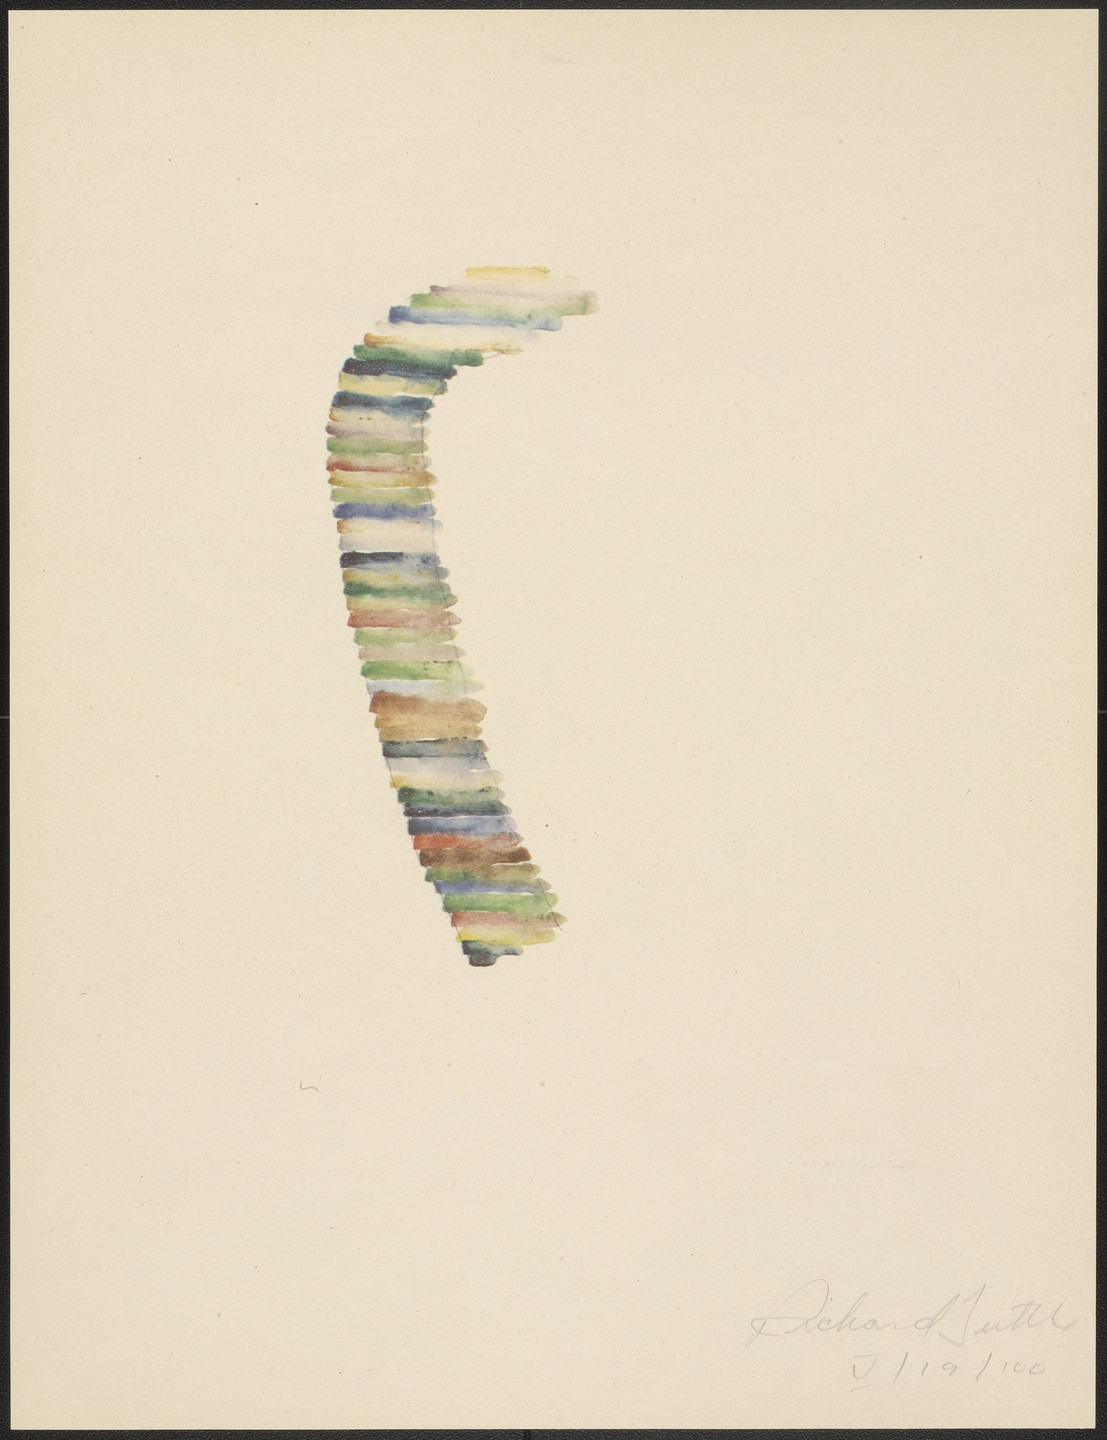 Richard Tuttle. V from Stacked Color Drawings, 1971. 1975